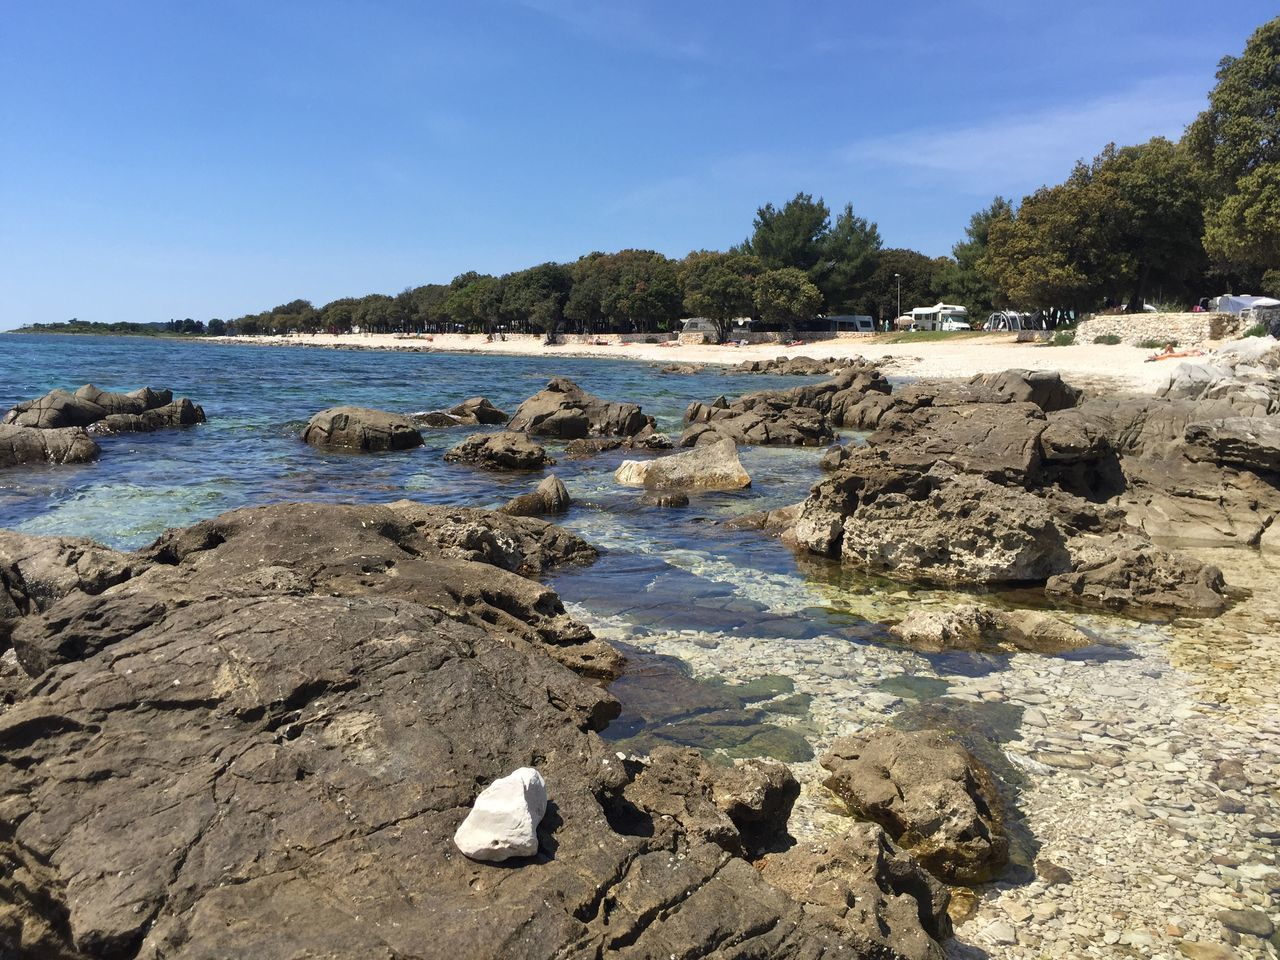 nature, water, rock - object, sky, tranquility, tranquil scene, scenics, outdoors, beauty in nature, sunlight, beach, no people, day, landscape, sea, tree